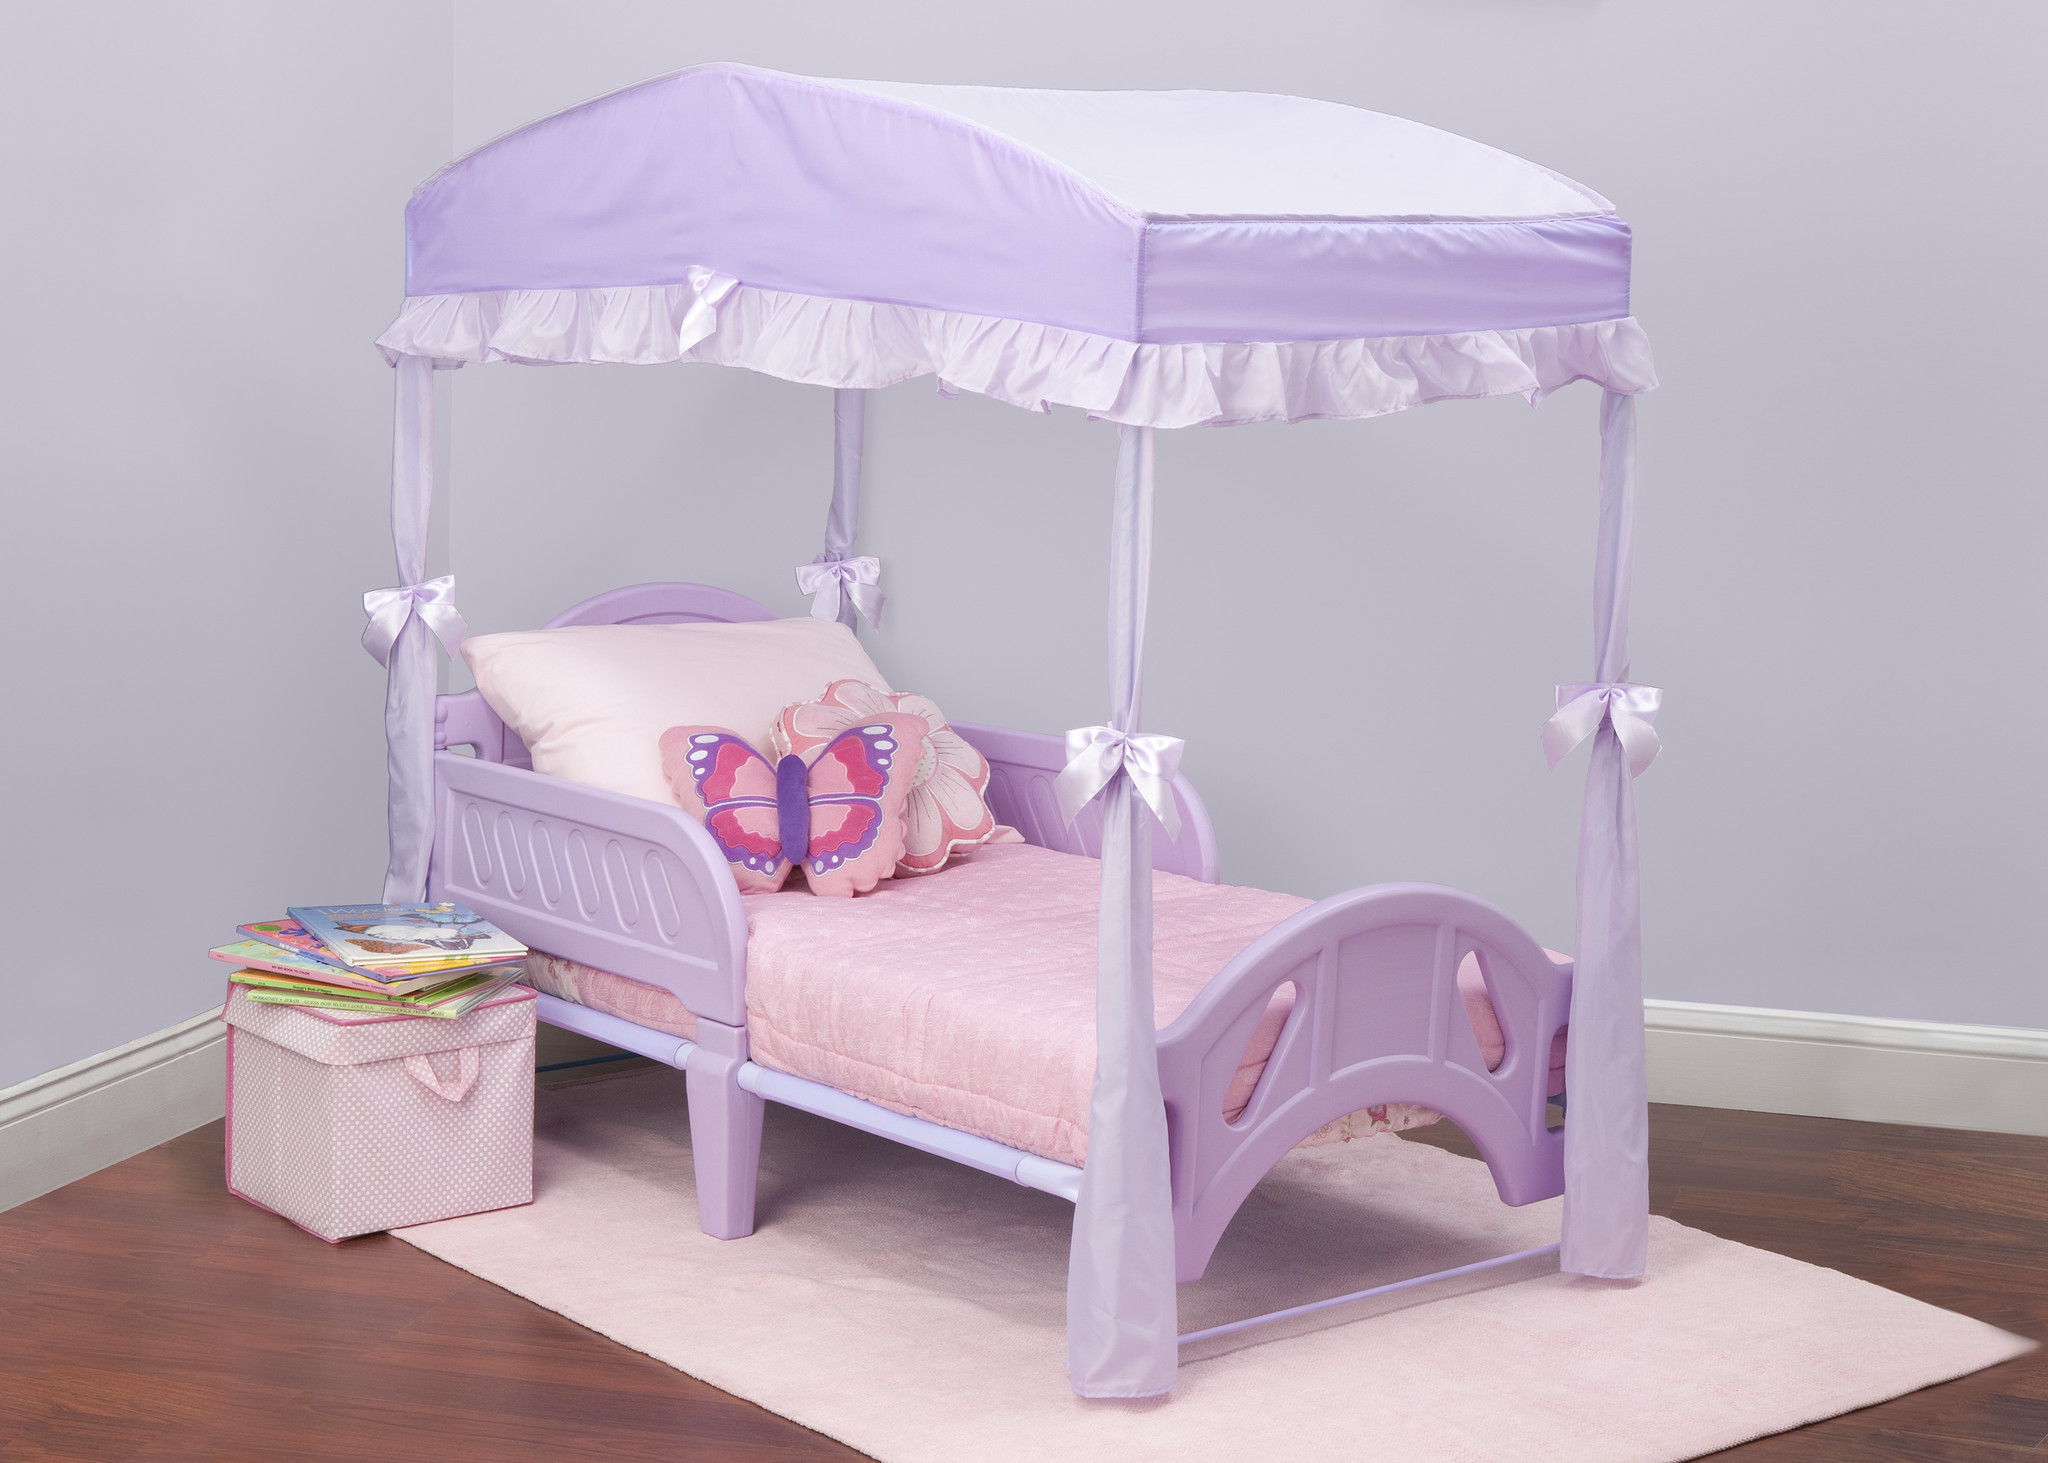 Toddler Canopy Bed